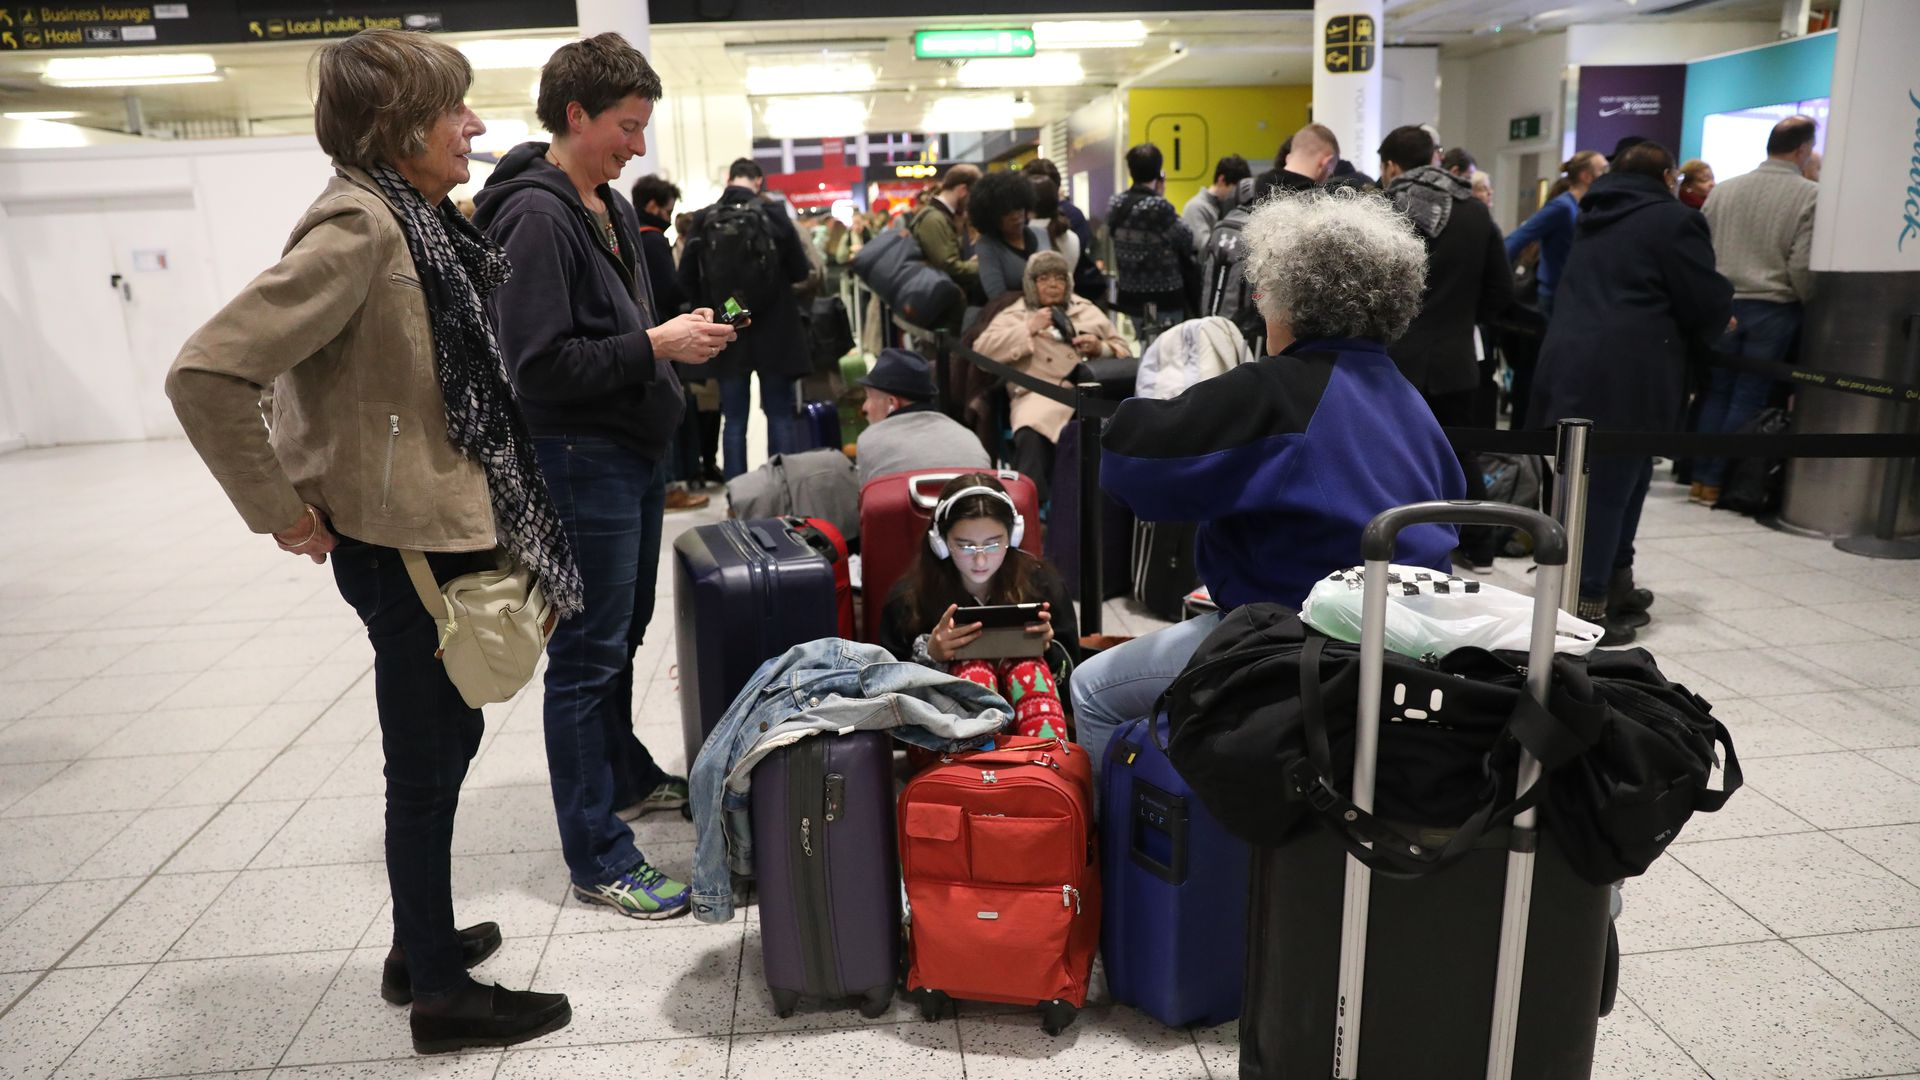 People stranded at gatwick airport.